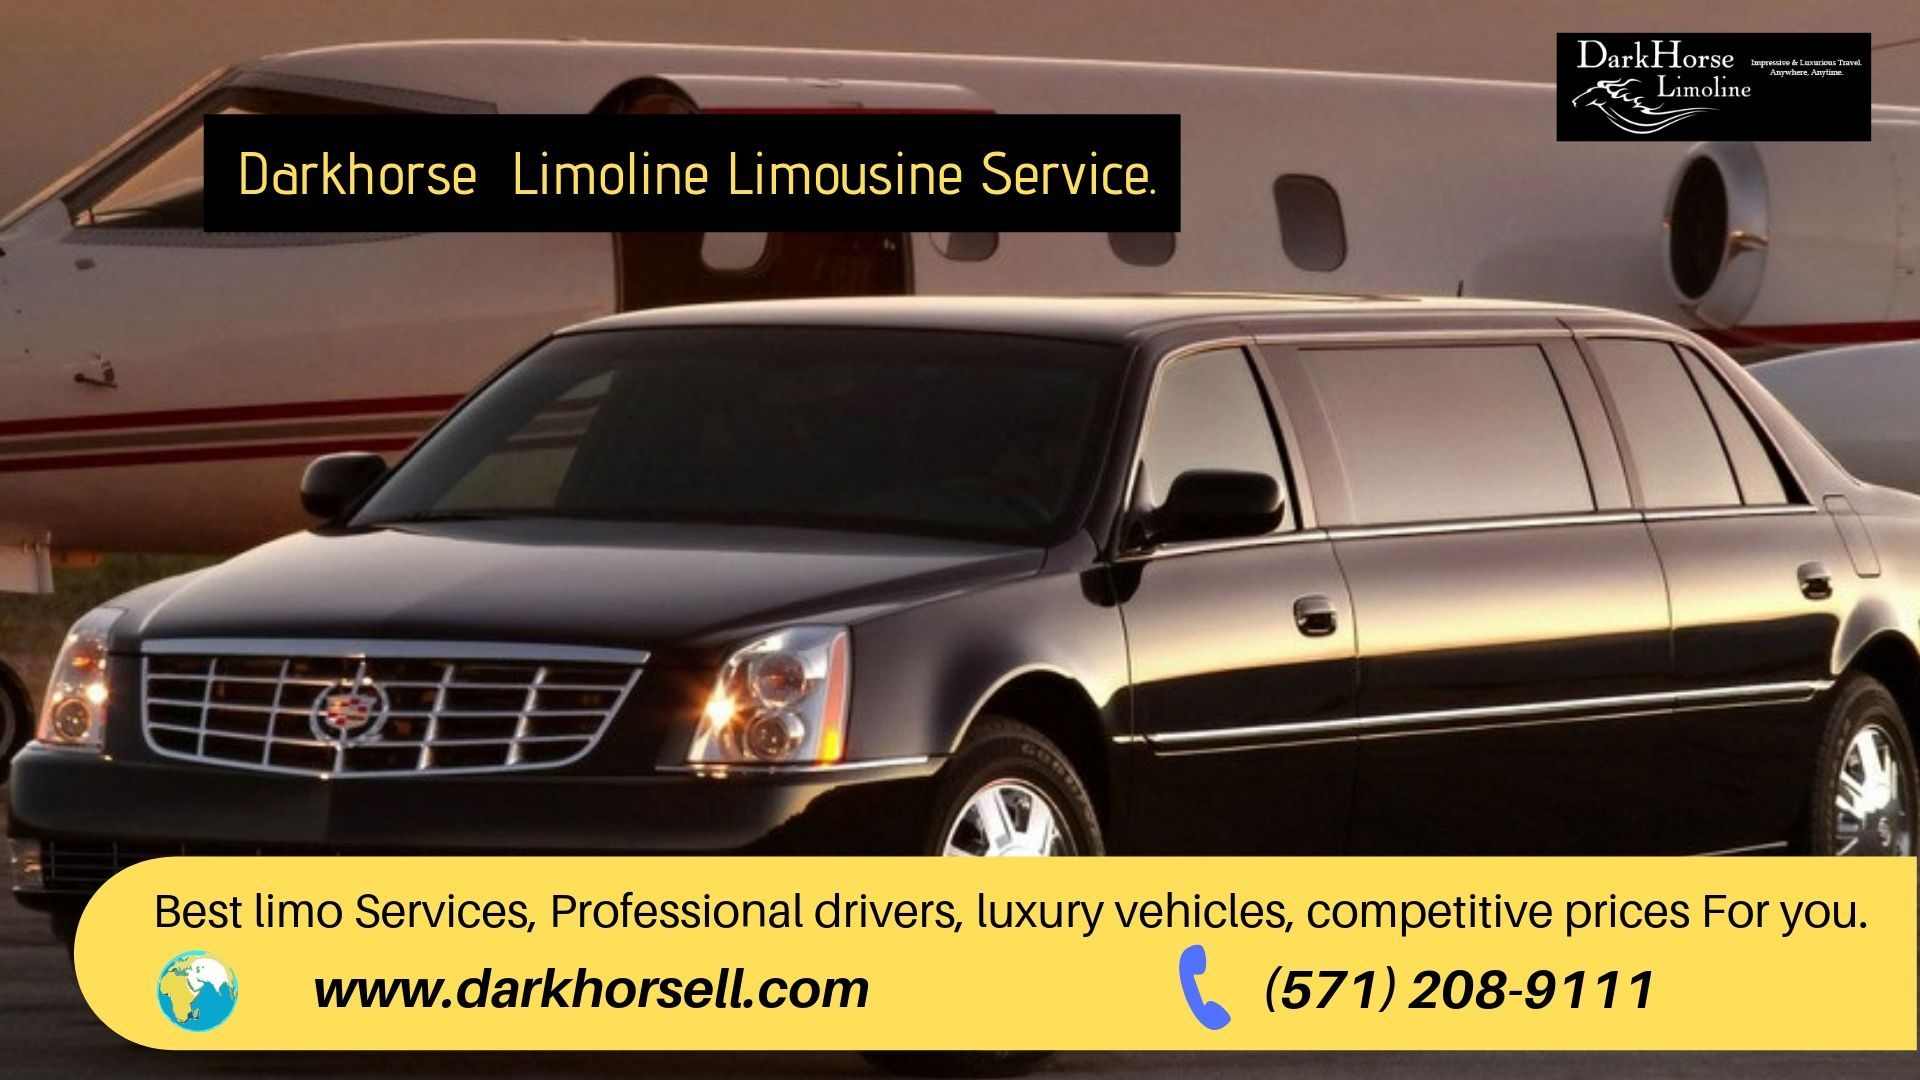 Are you looking for Best Limo Service in Maryland Party